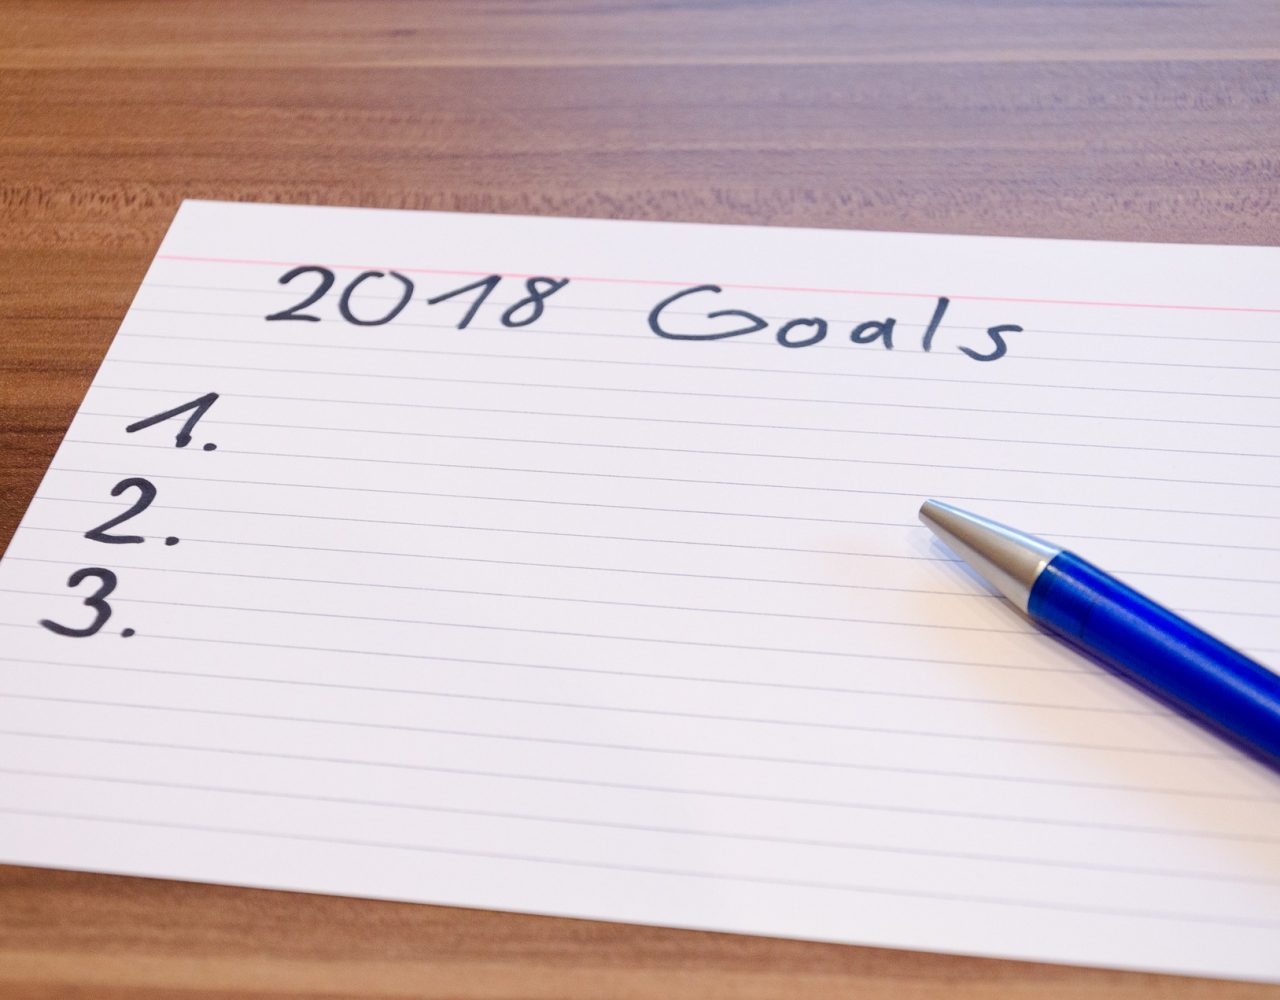 The Simple Steps to Goal Achievement, Inspired by Daymond John (part two)